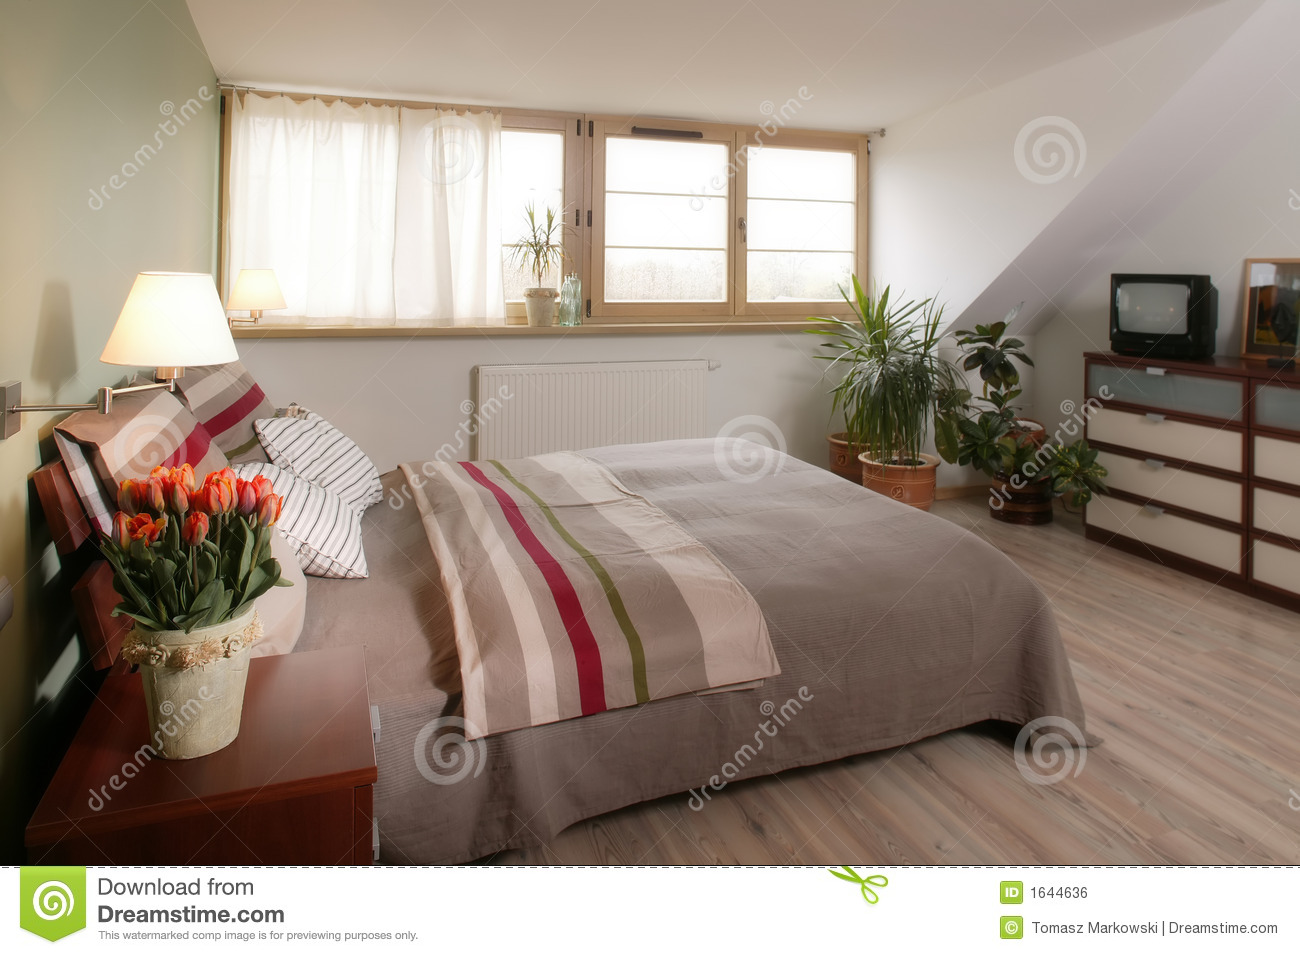 Stylish bedroom royalty free stock image image 1644636 - Image bed room ...